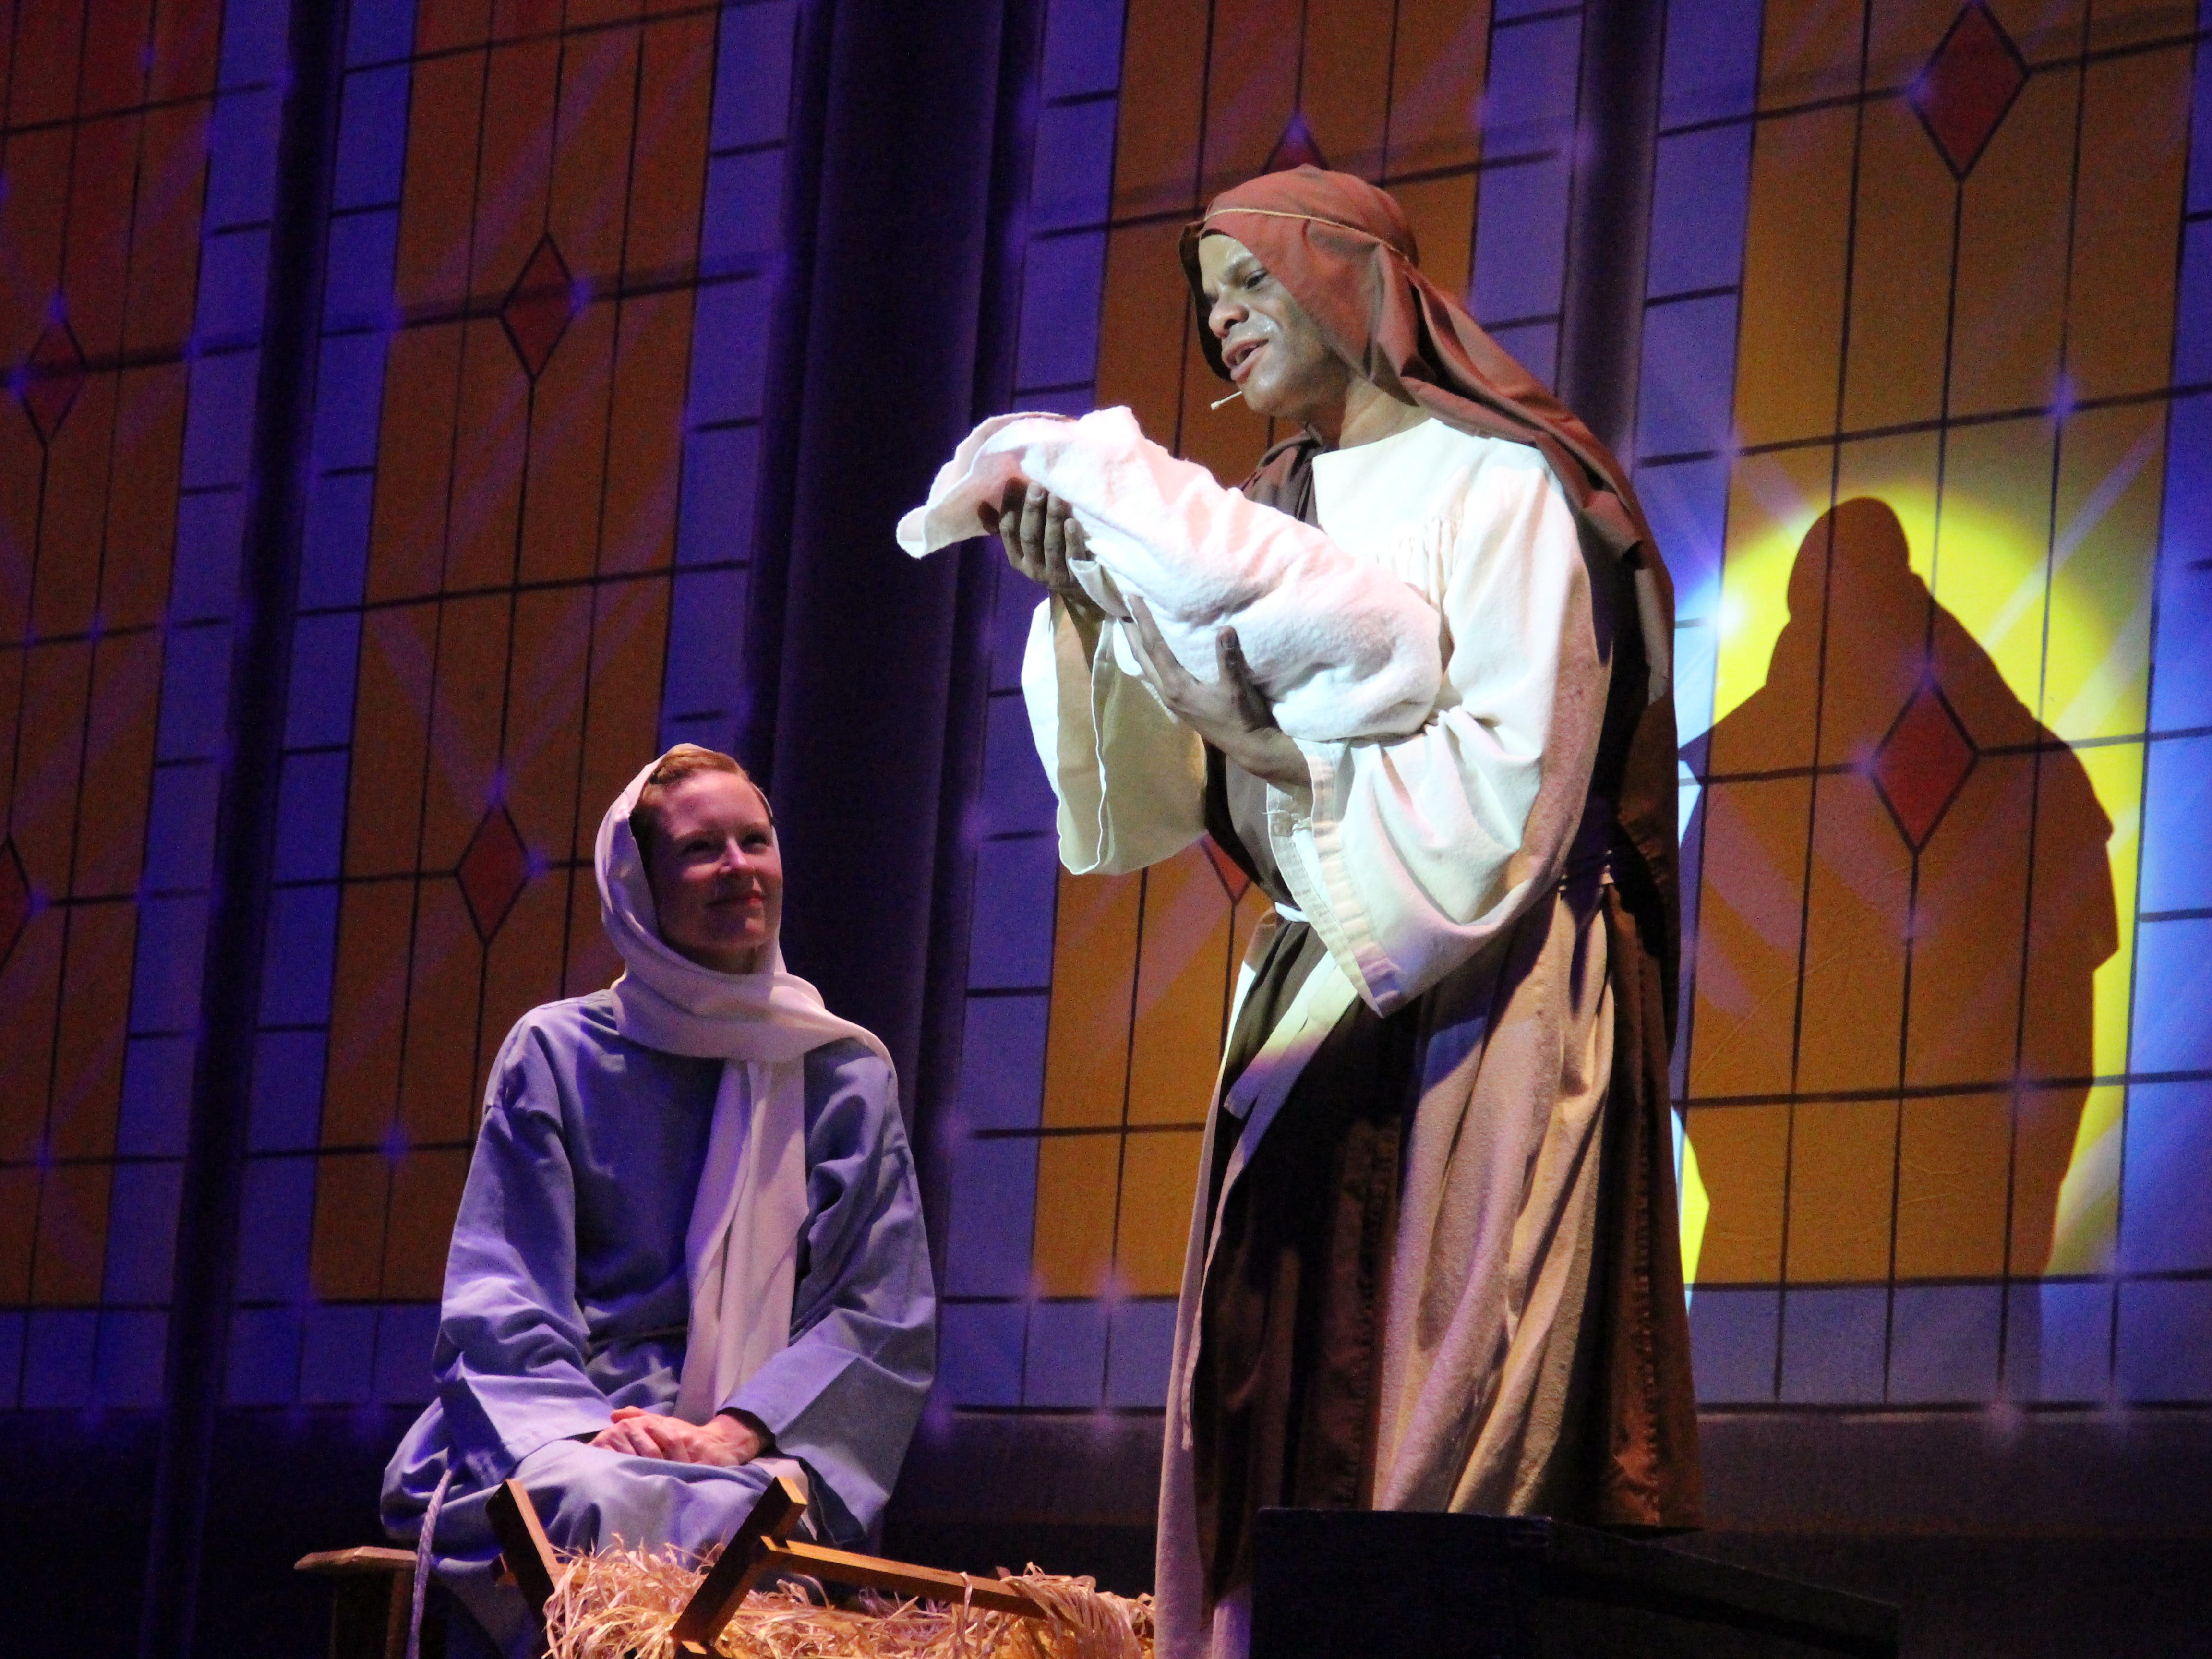 """Kim Bradshaw and John W. Garnes II play Mary and Joseph in the Marion Palace Theatre's annual production of """"Christmas at the Palace,"""" which takes place at 7:30 p.m. Friday, Nov. 30 and Saturday, Dec. 1 and at 2 p.m. Sunday, Dec. 2. Tickets are on sale and may be purchased at the Palace's box office, by phone or online."""